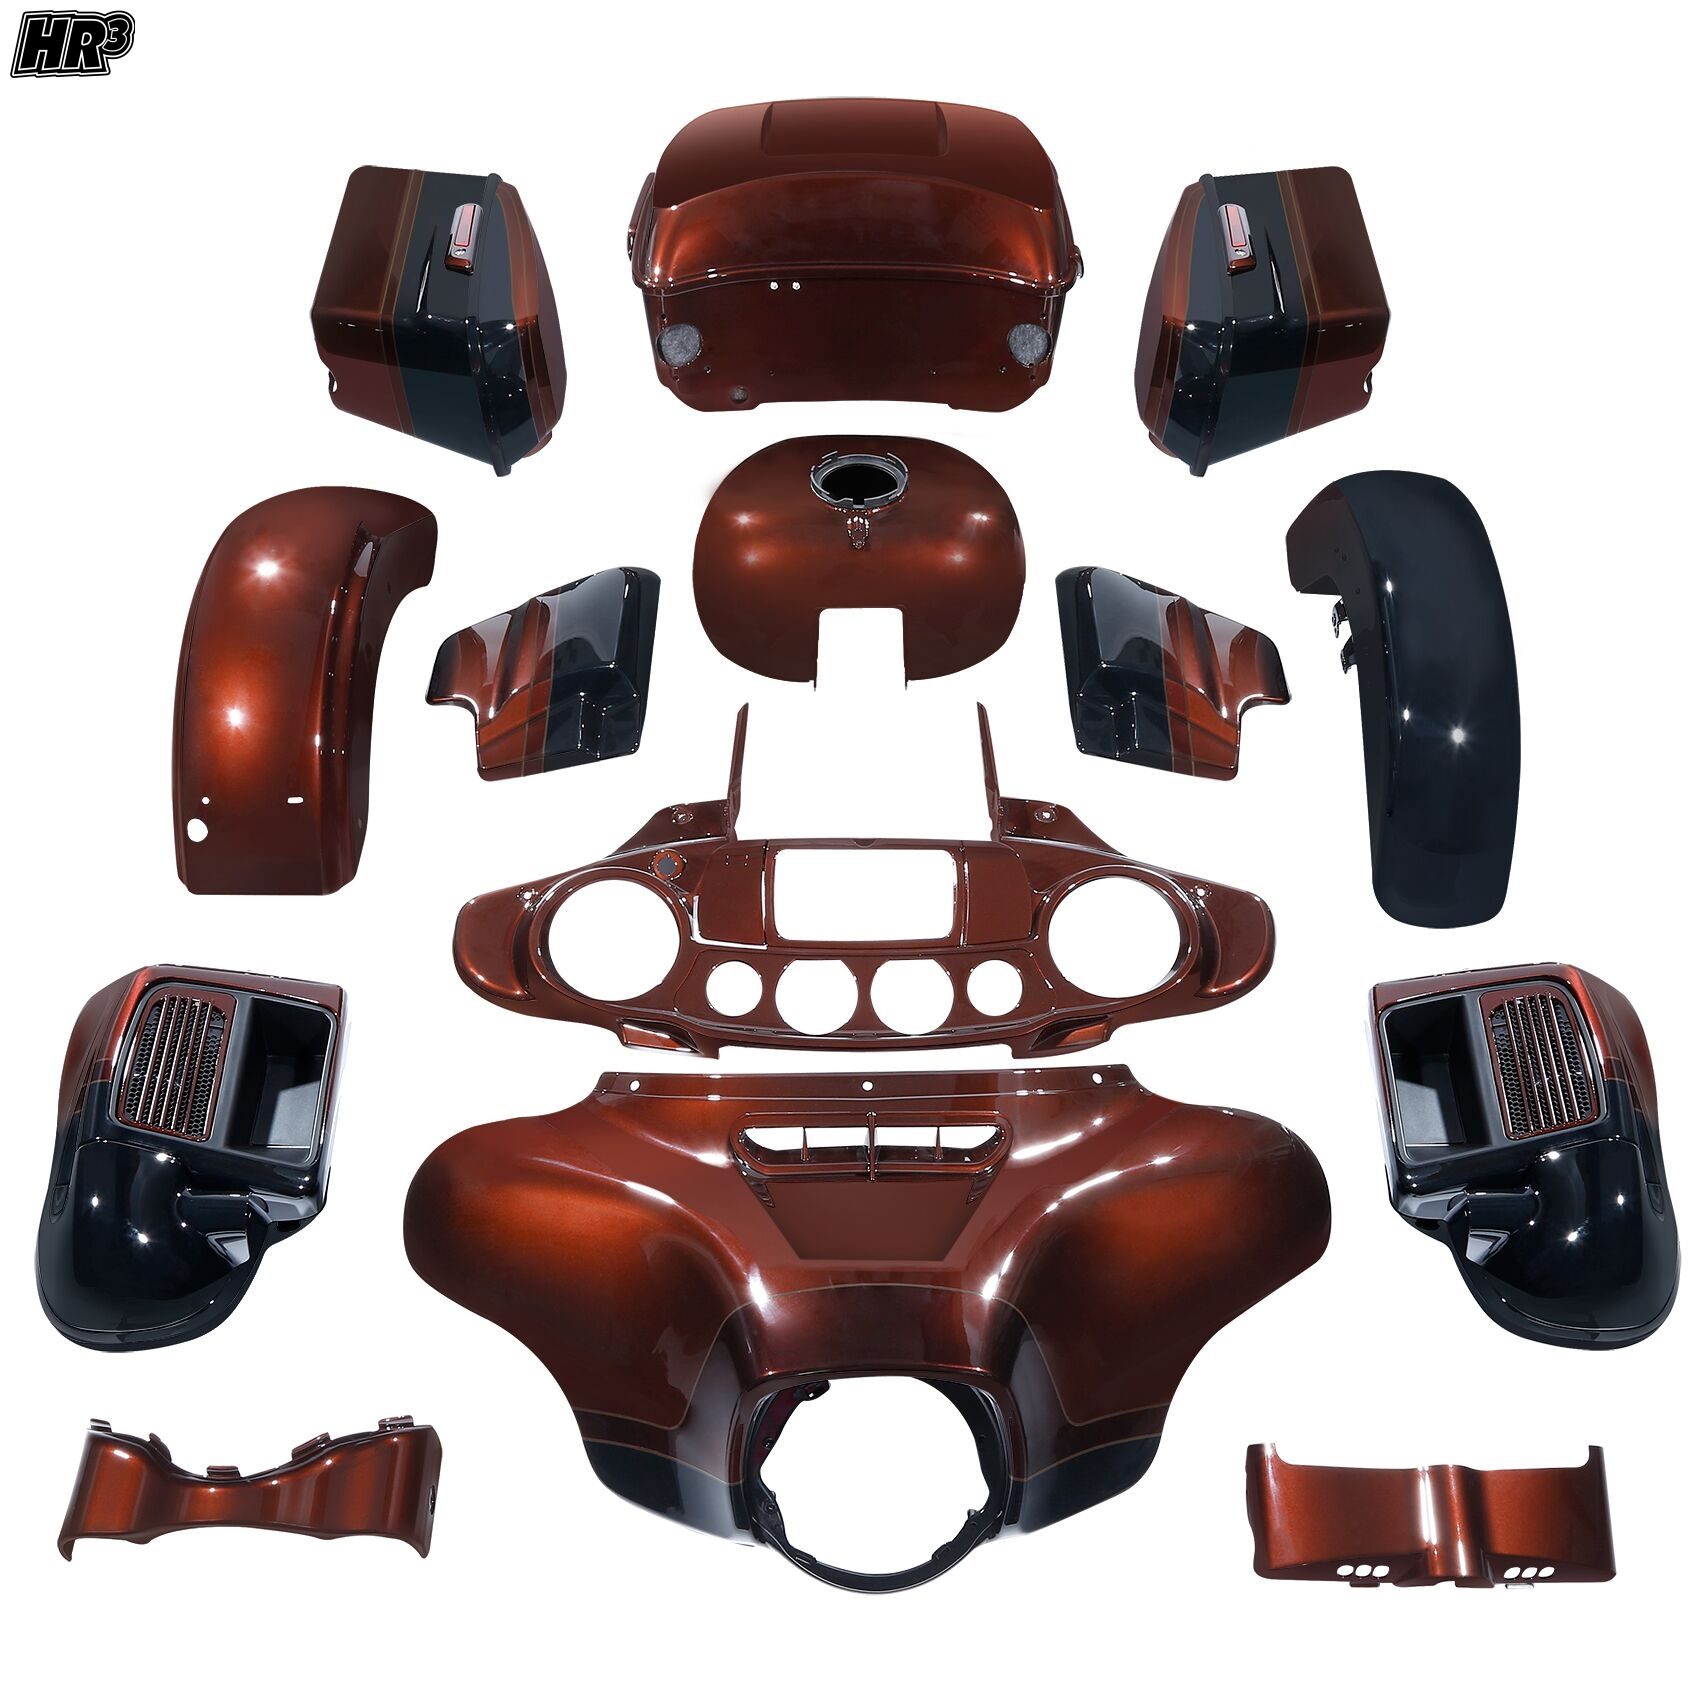 HR3 body kit Fairing For Harley CVO Limited 2019 Auburn Sunglo & Black Hole With Rich Bourbon